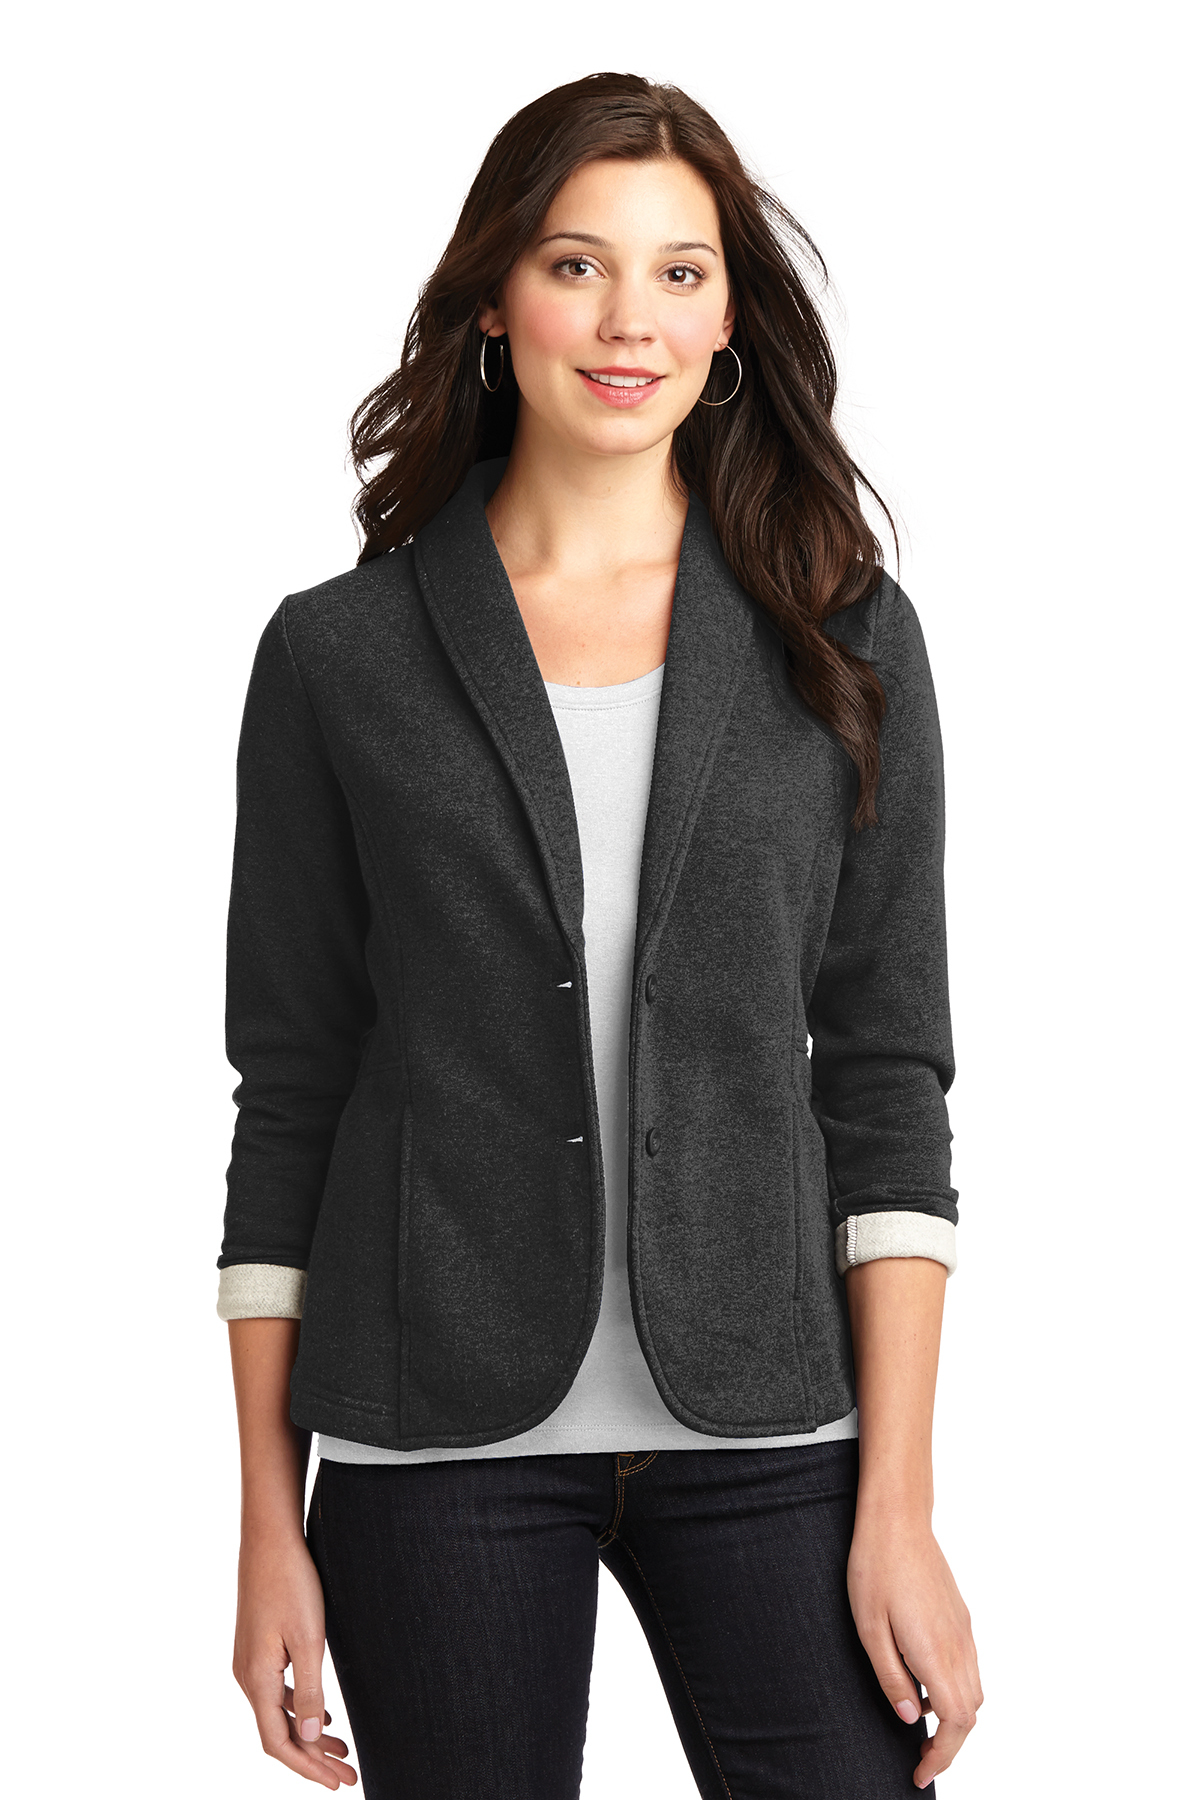 click to view Dark Charcoal Heather